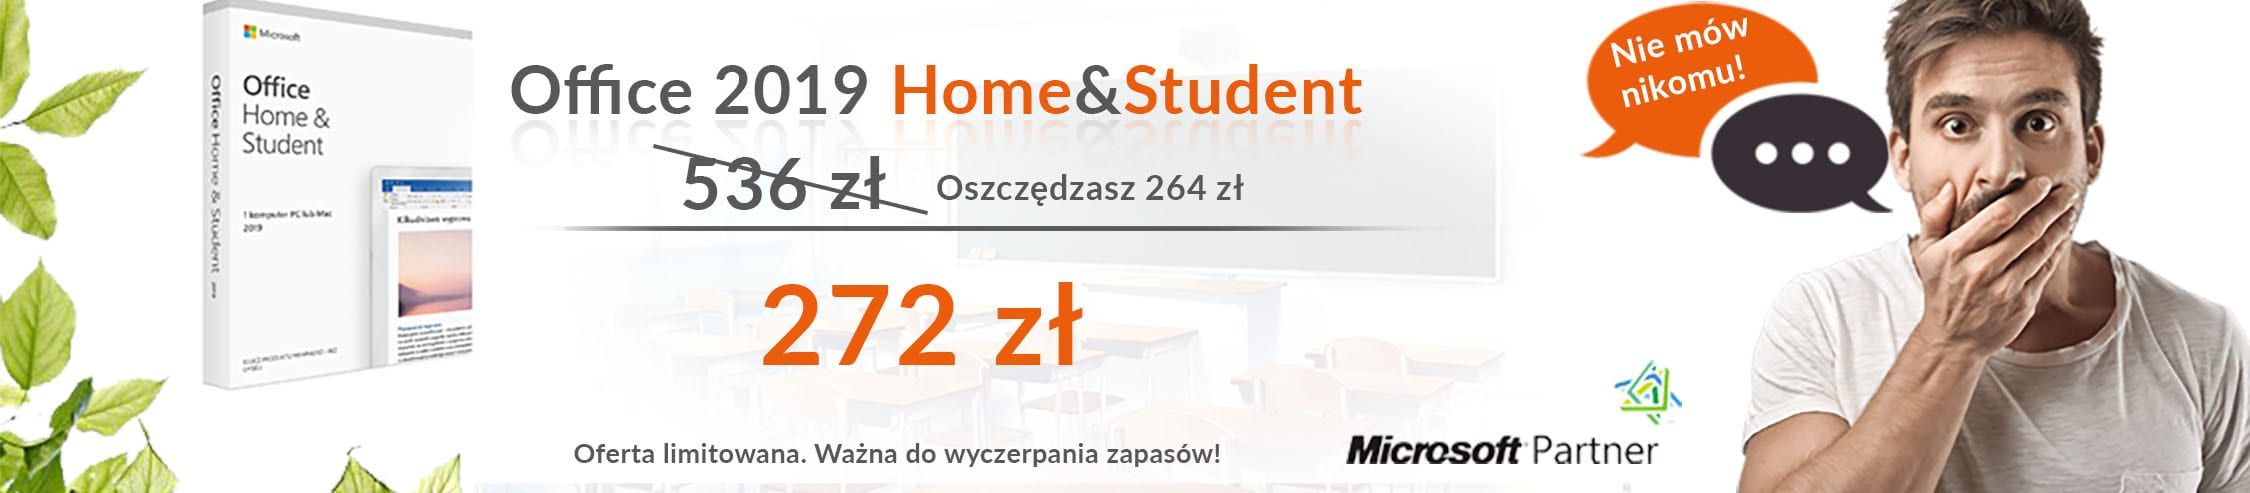 office 2019 home student banner